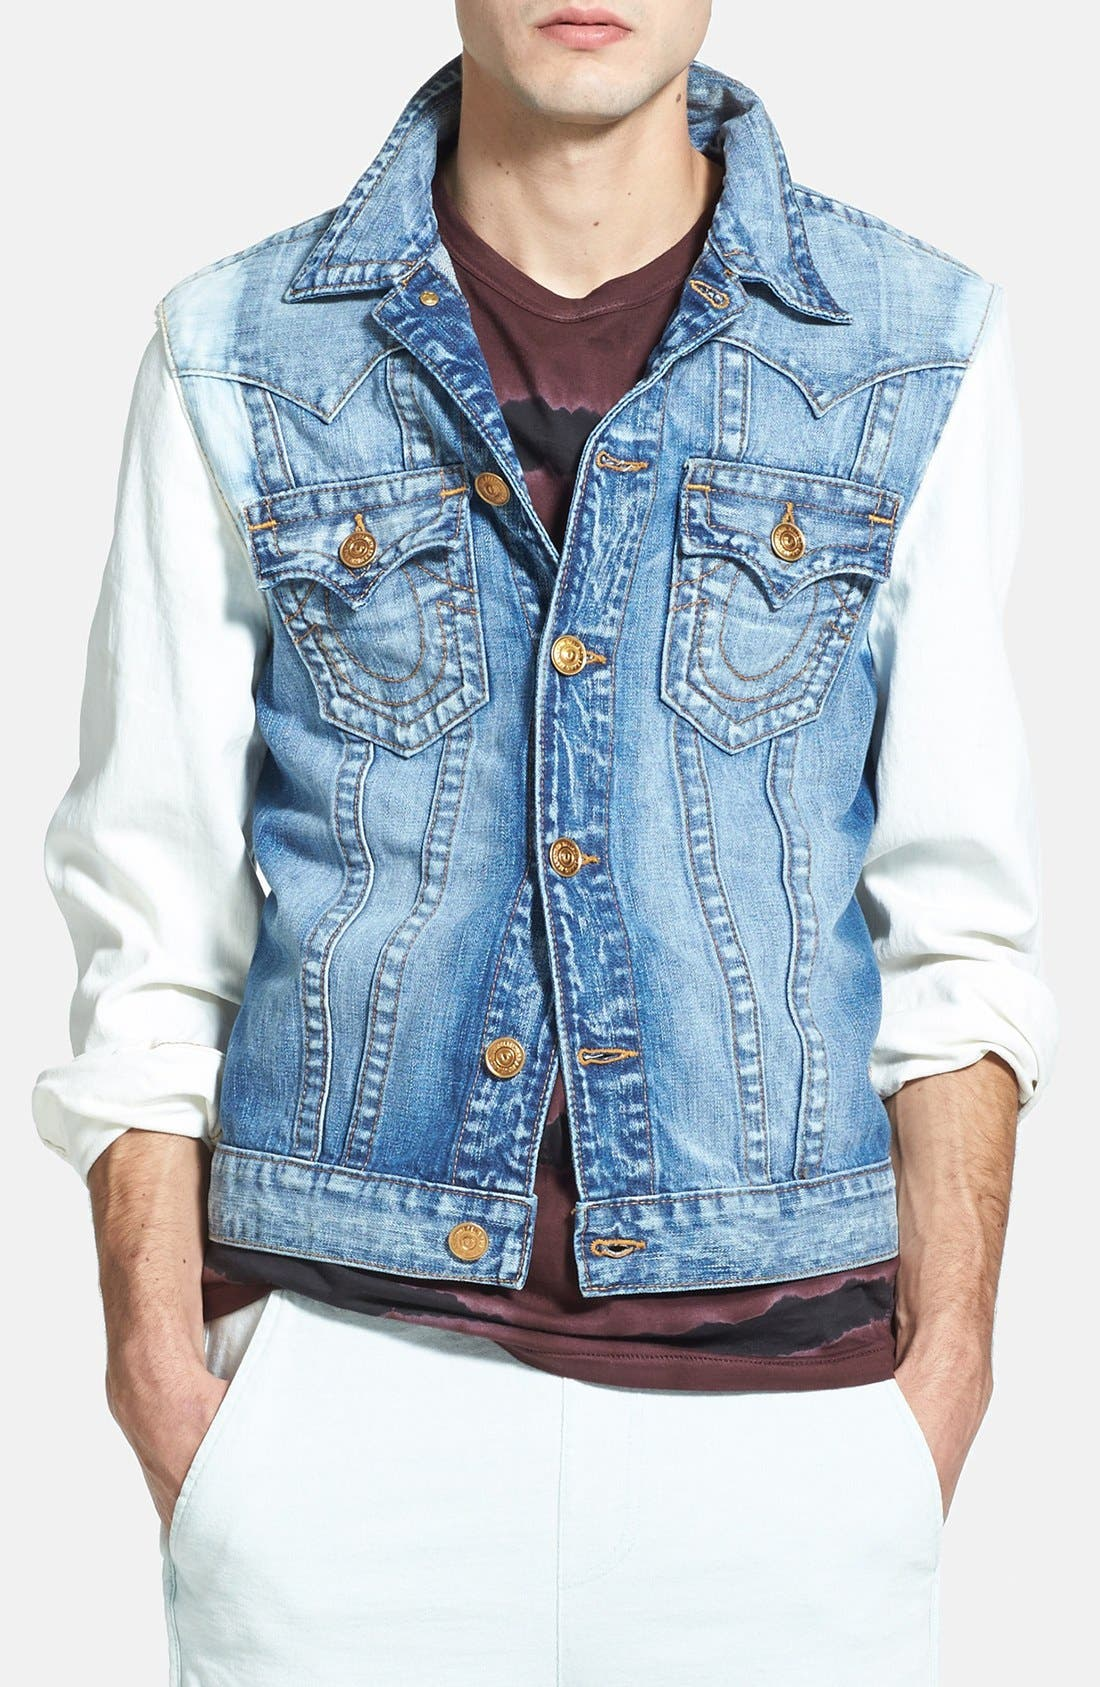 Main Image - True Religion Brand Jeans 'Jimmy' Trim Fit Washed Denim Jacket